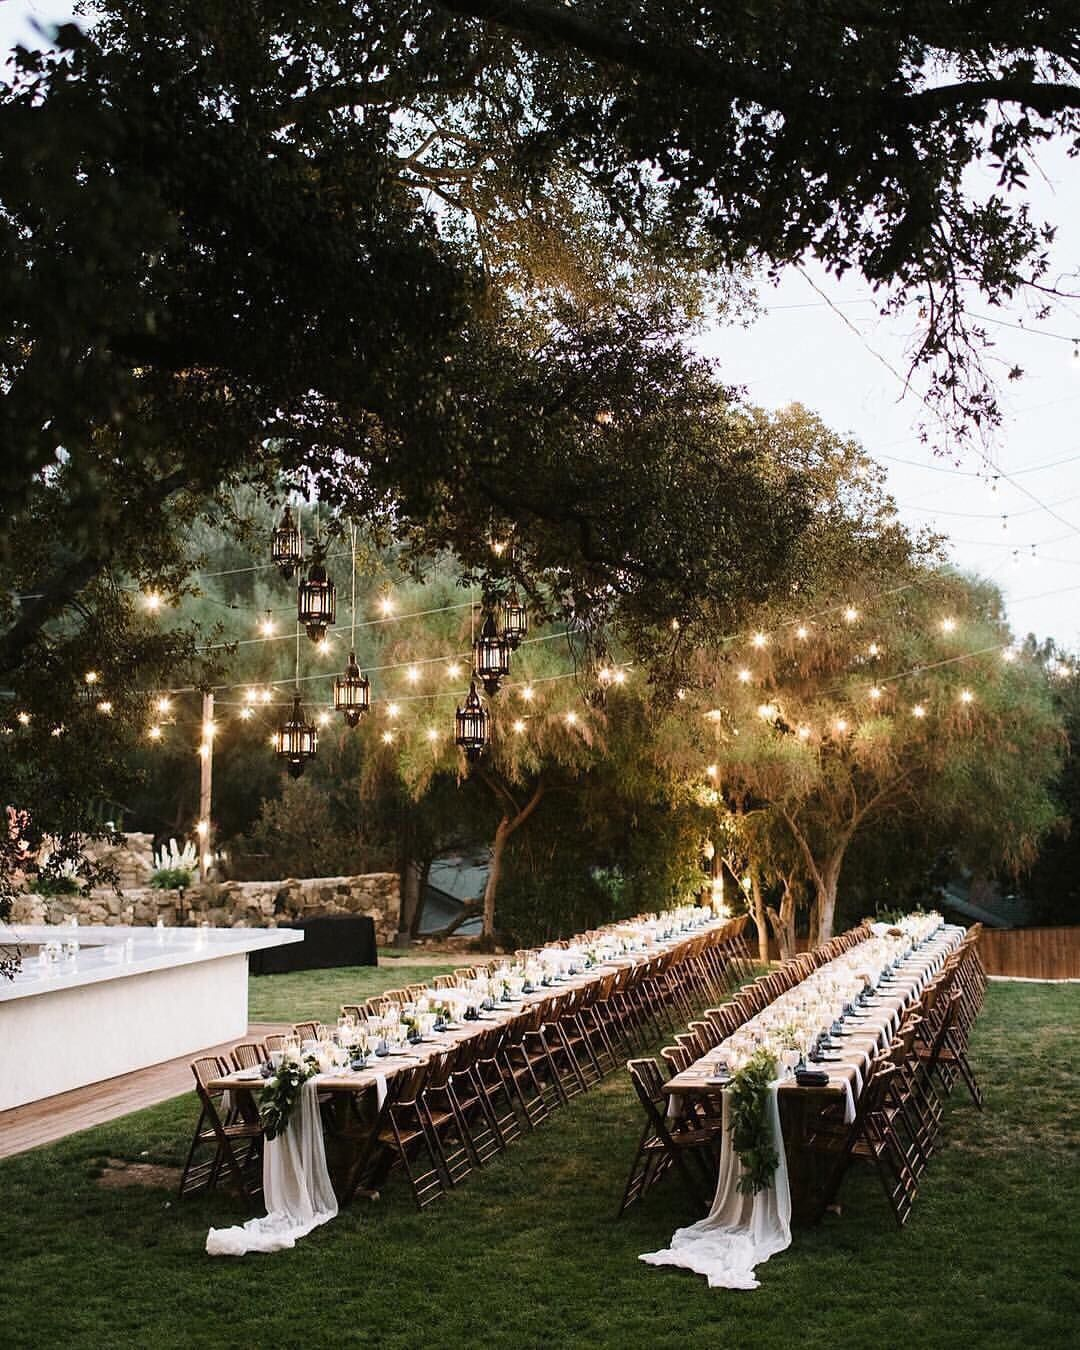 Pizza Wedding Reception Ideas: Pin By The Bridal Journey On BOHO WEDDING // In 2019